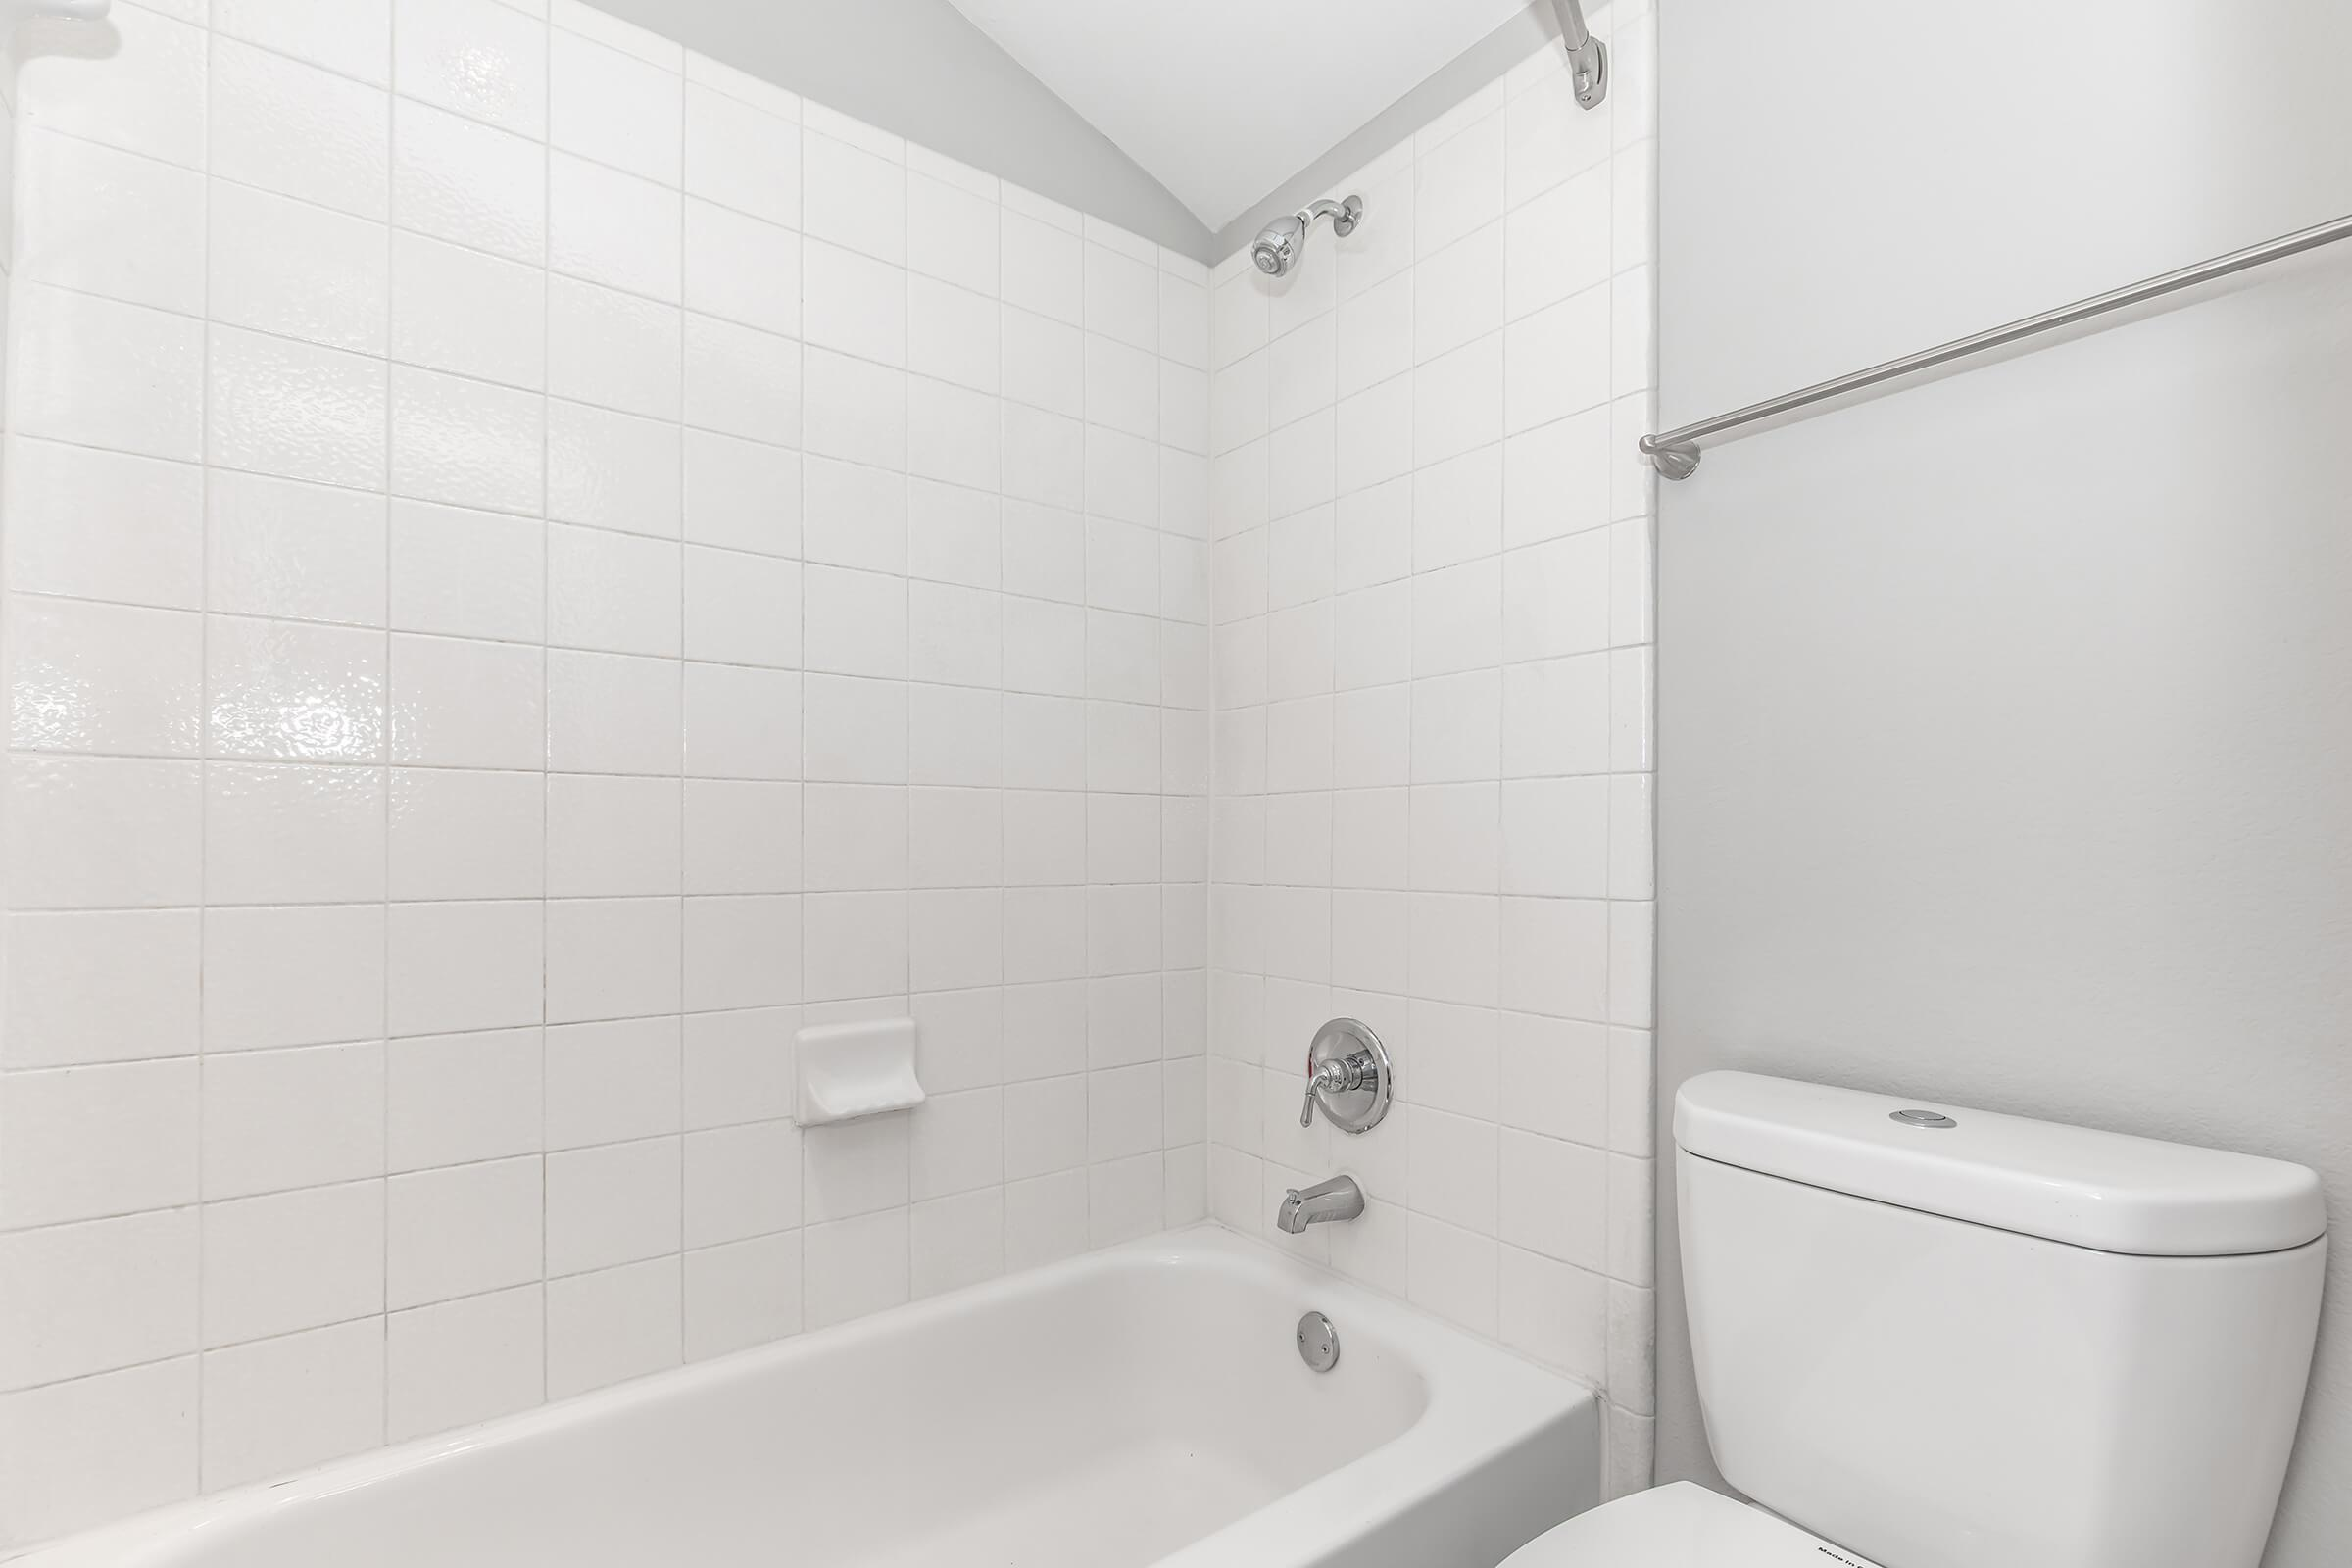 a white sink sitting next to a tiled wall